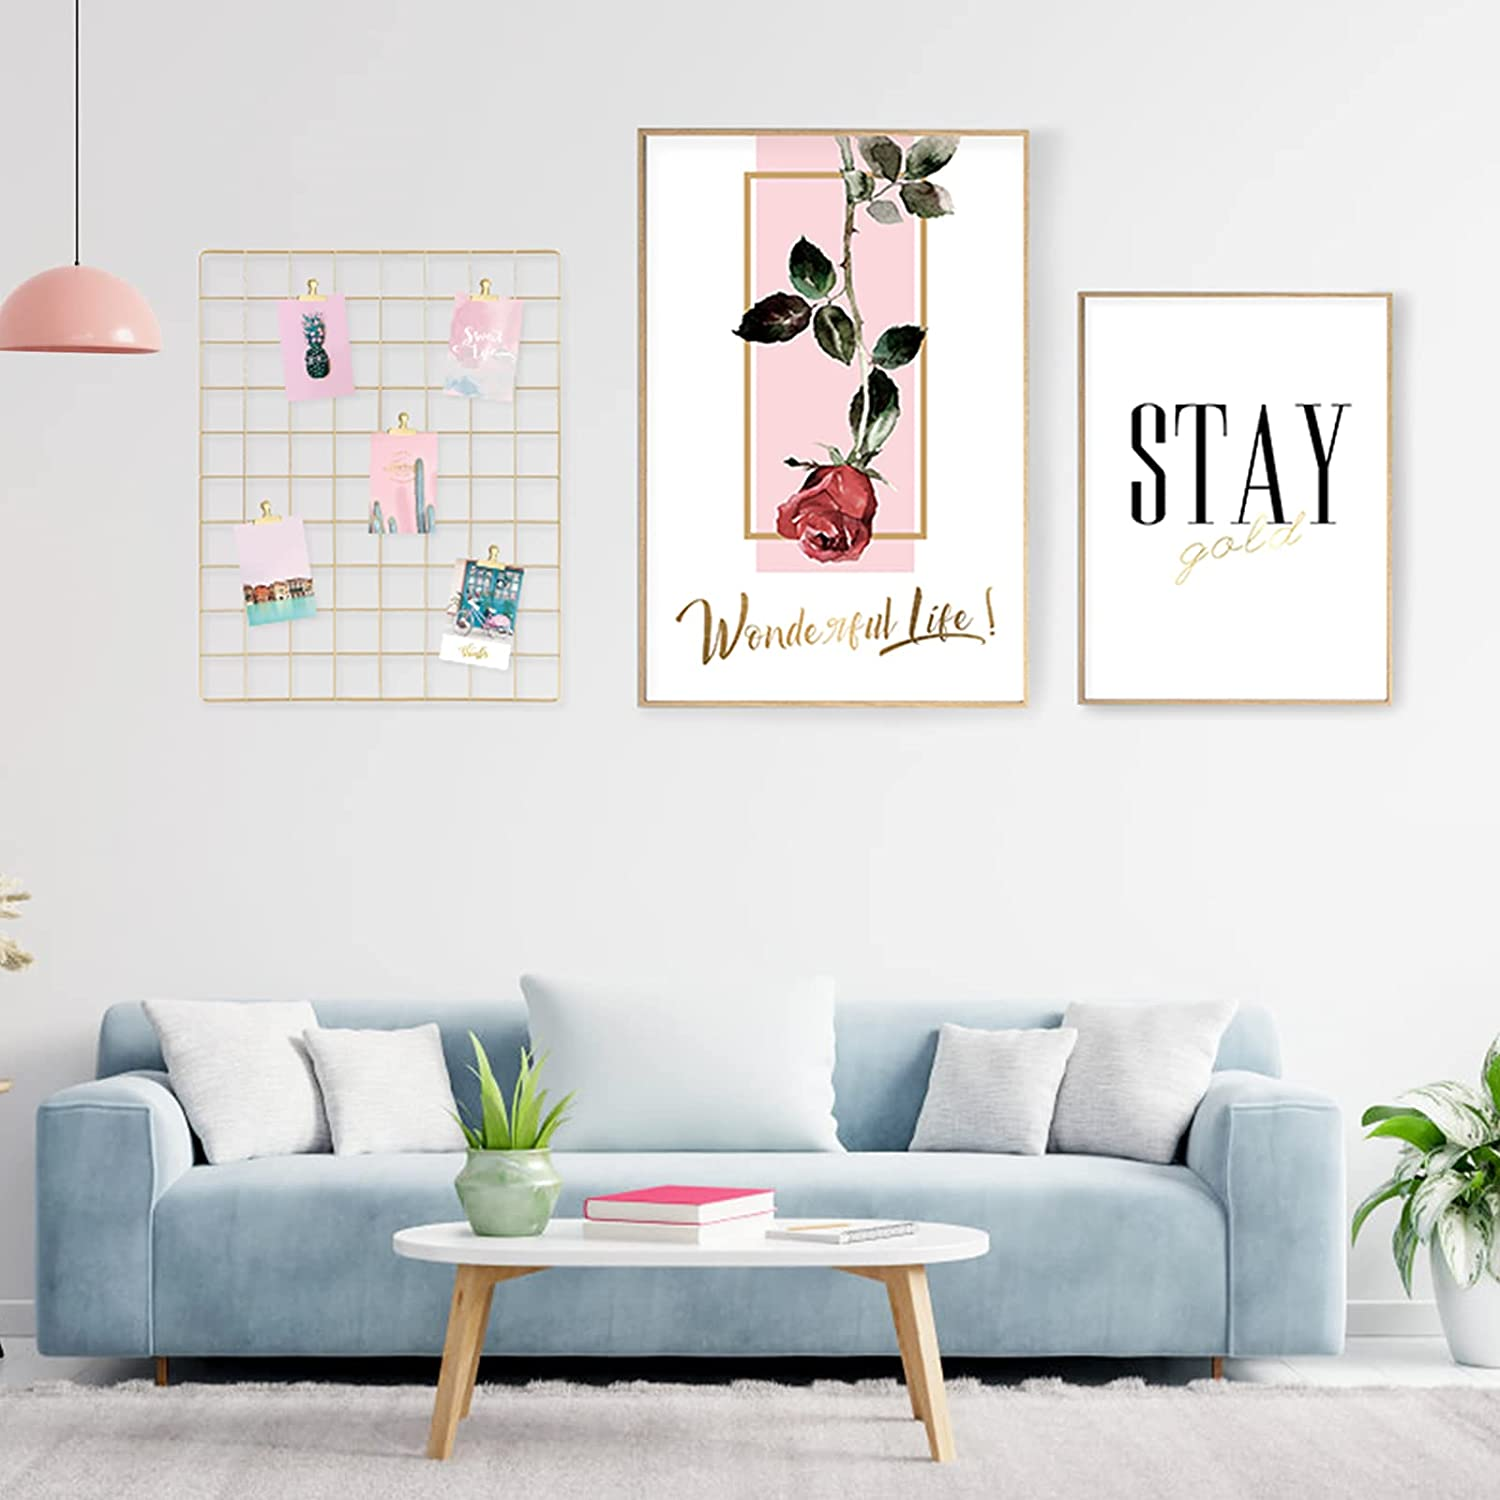 Deluxe Crelity Room Decor Wall Art 3 Piece Rose Canv Red Portland Mall 16x24IN